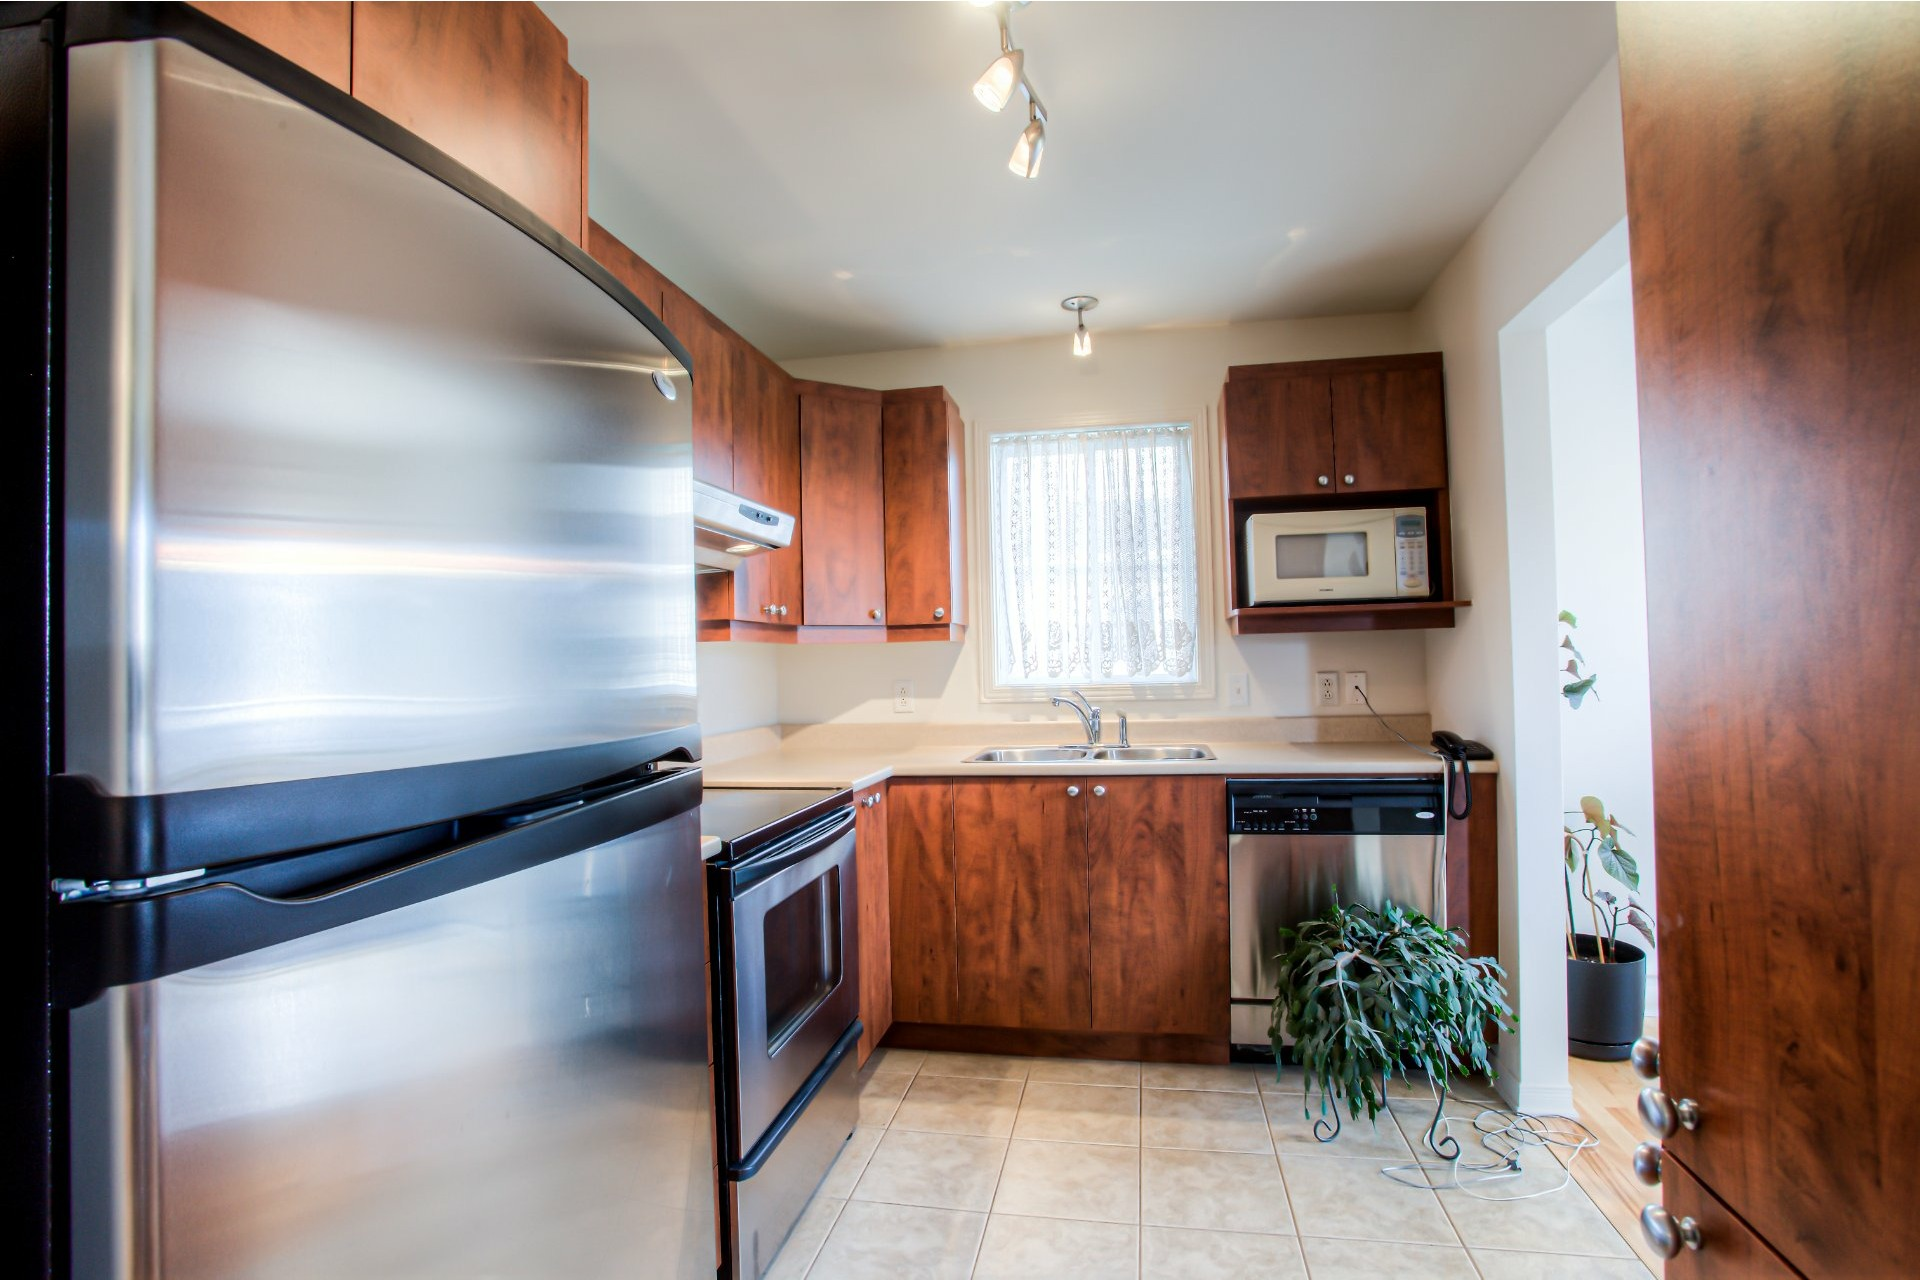 image 13 - House For sale Vaudreuil-Dorion - 8 rooms